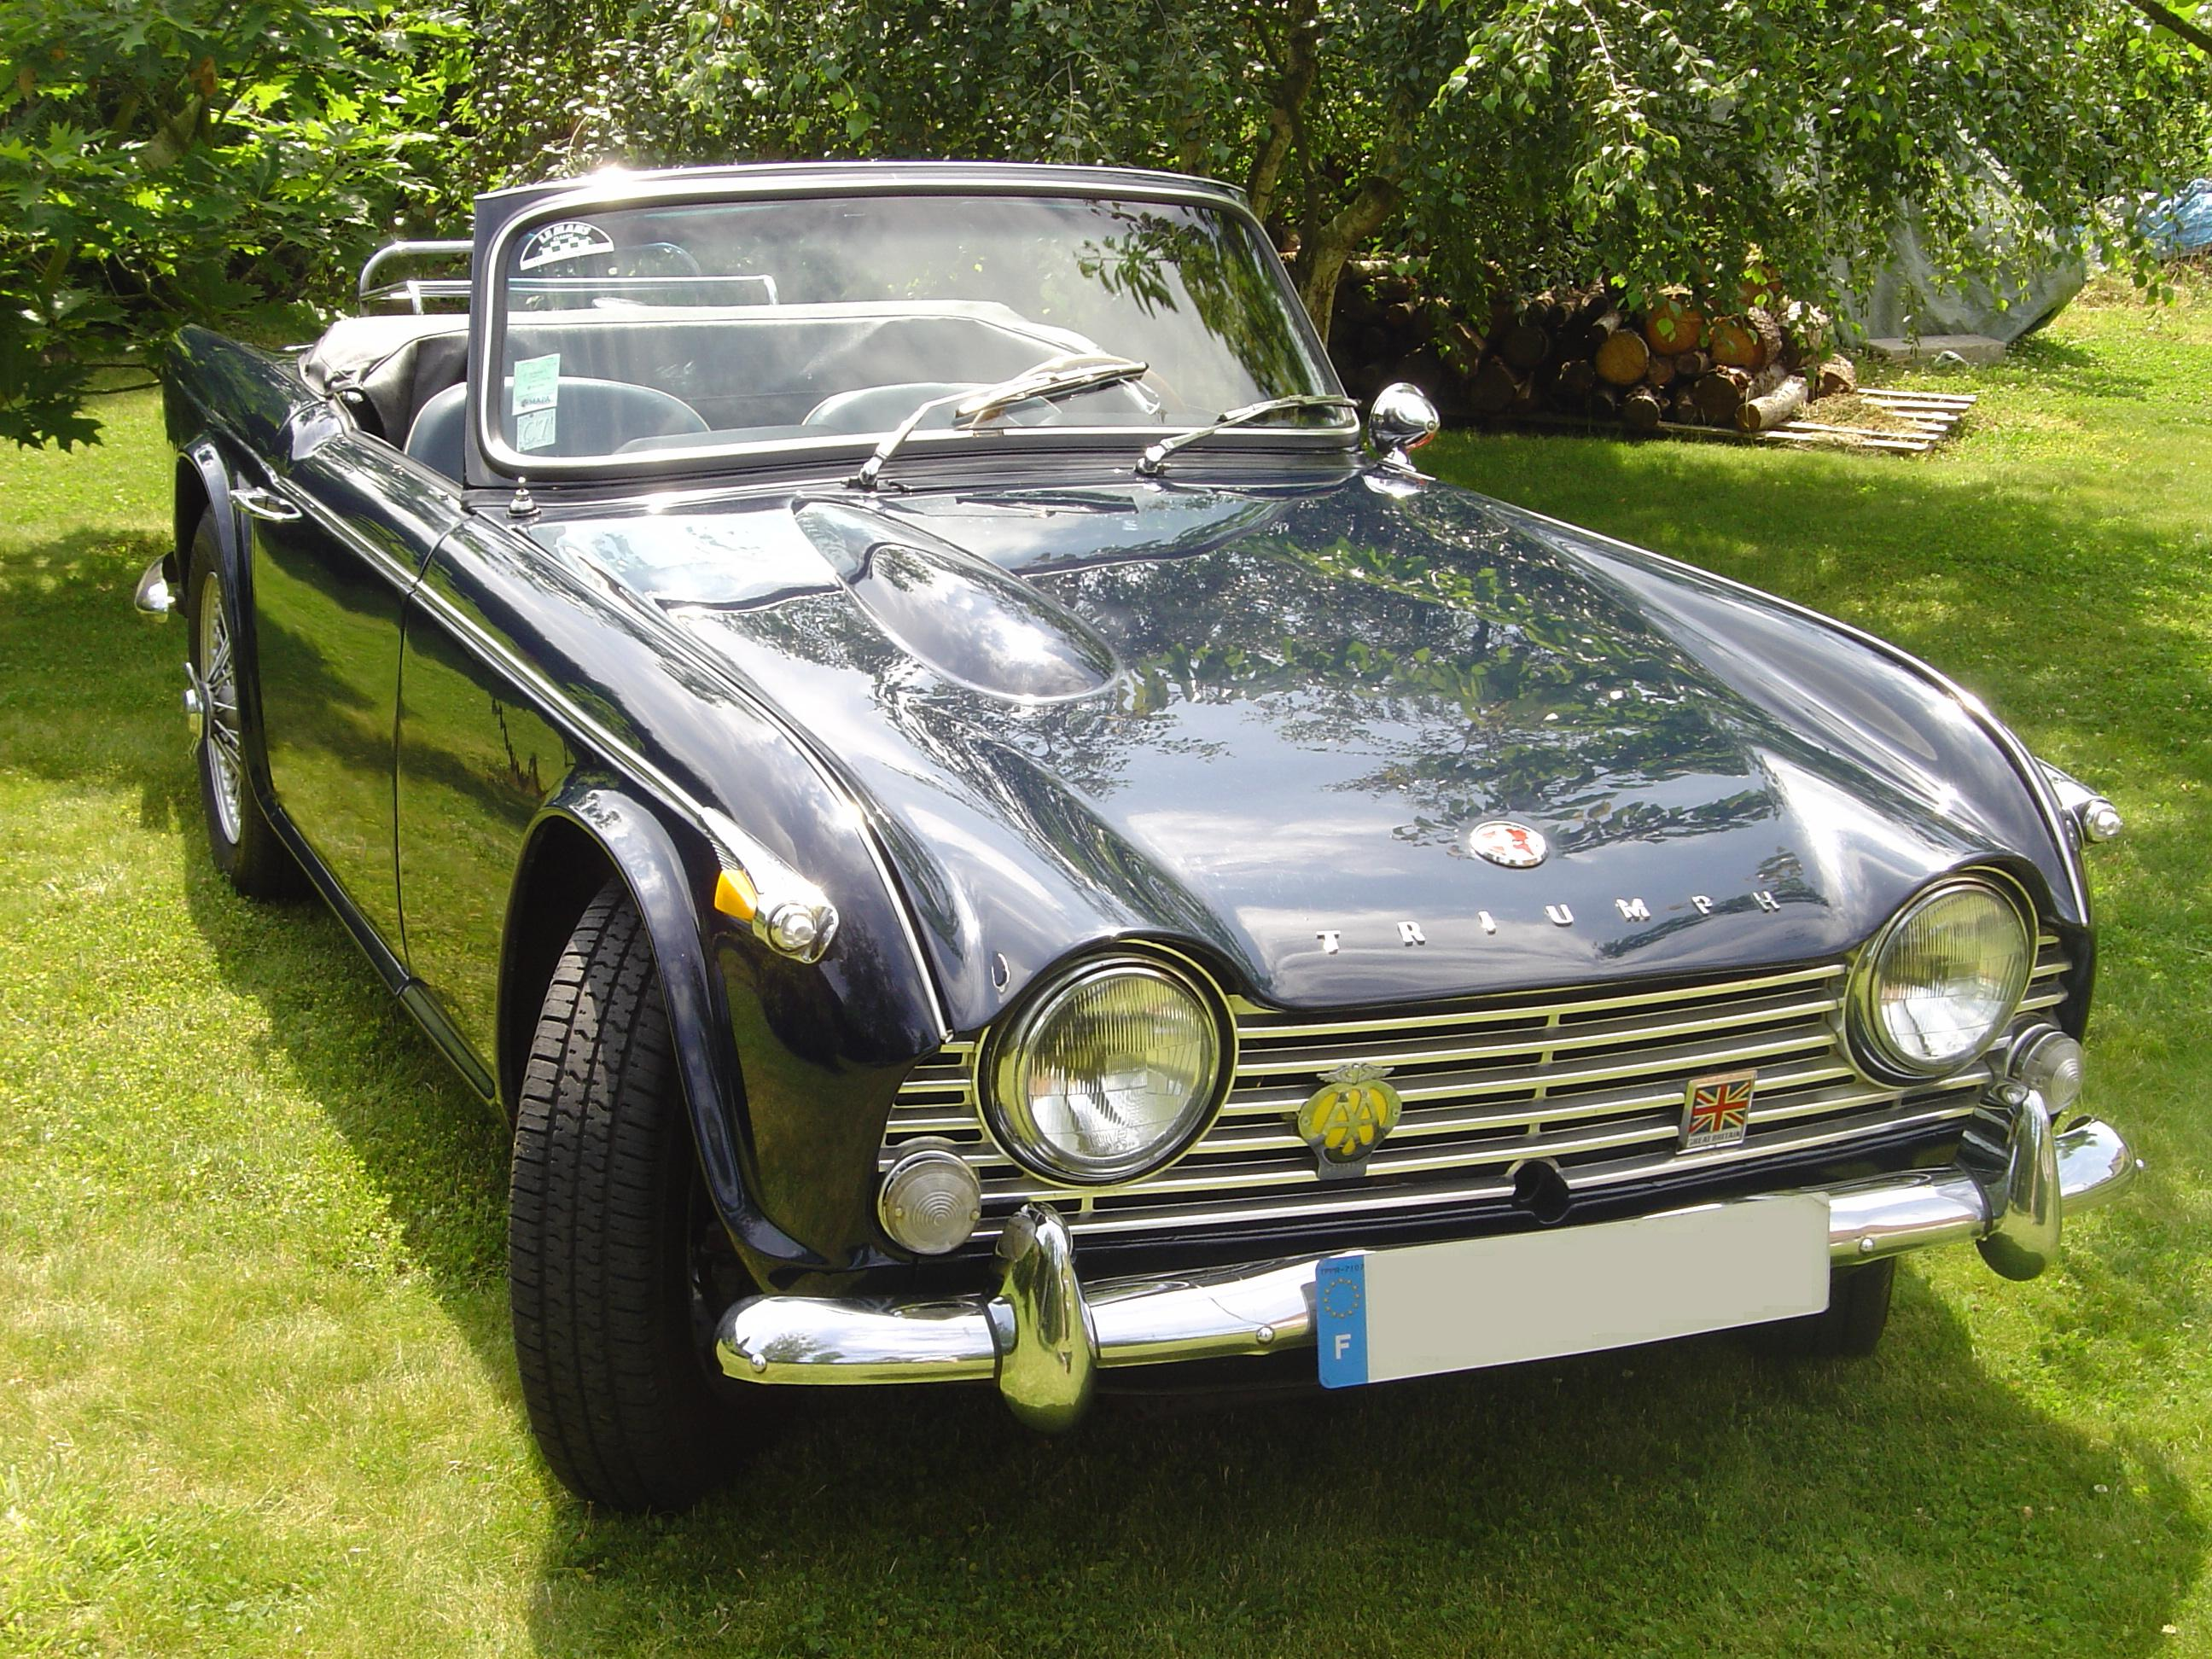 Triumph Tr4 Wiring Diagram Control 67 Gt6 Hid Driving Light Get Free Image About 1978 Spitfire Mk3